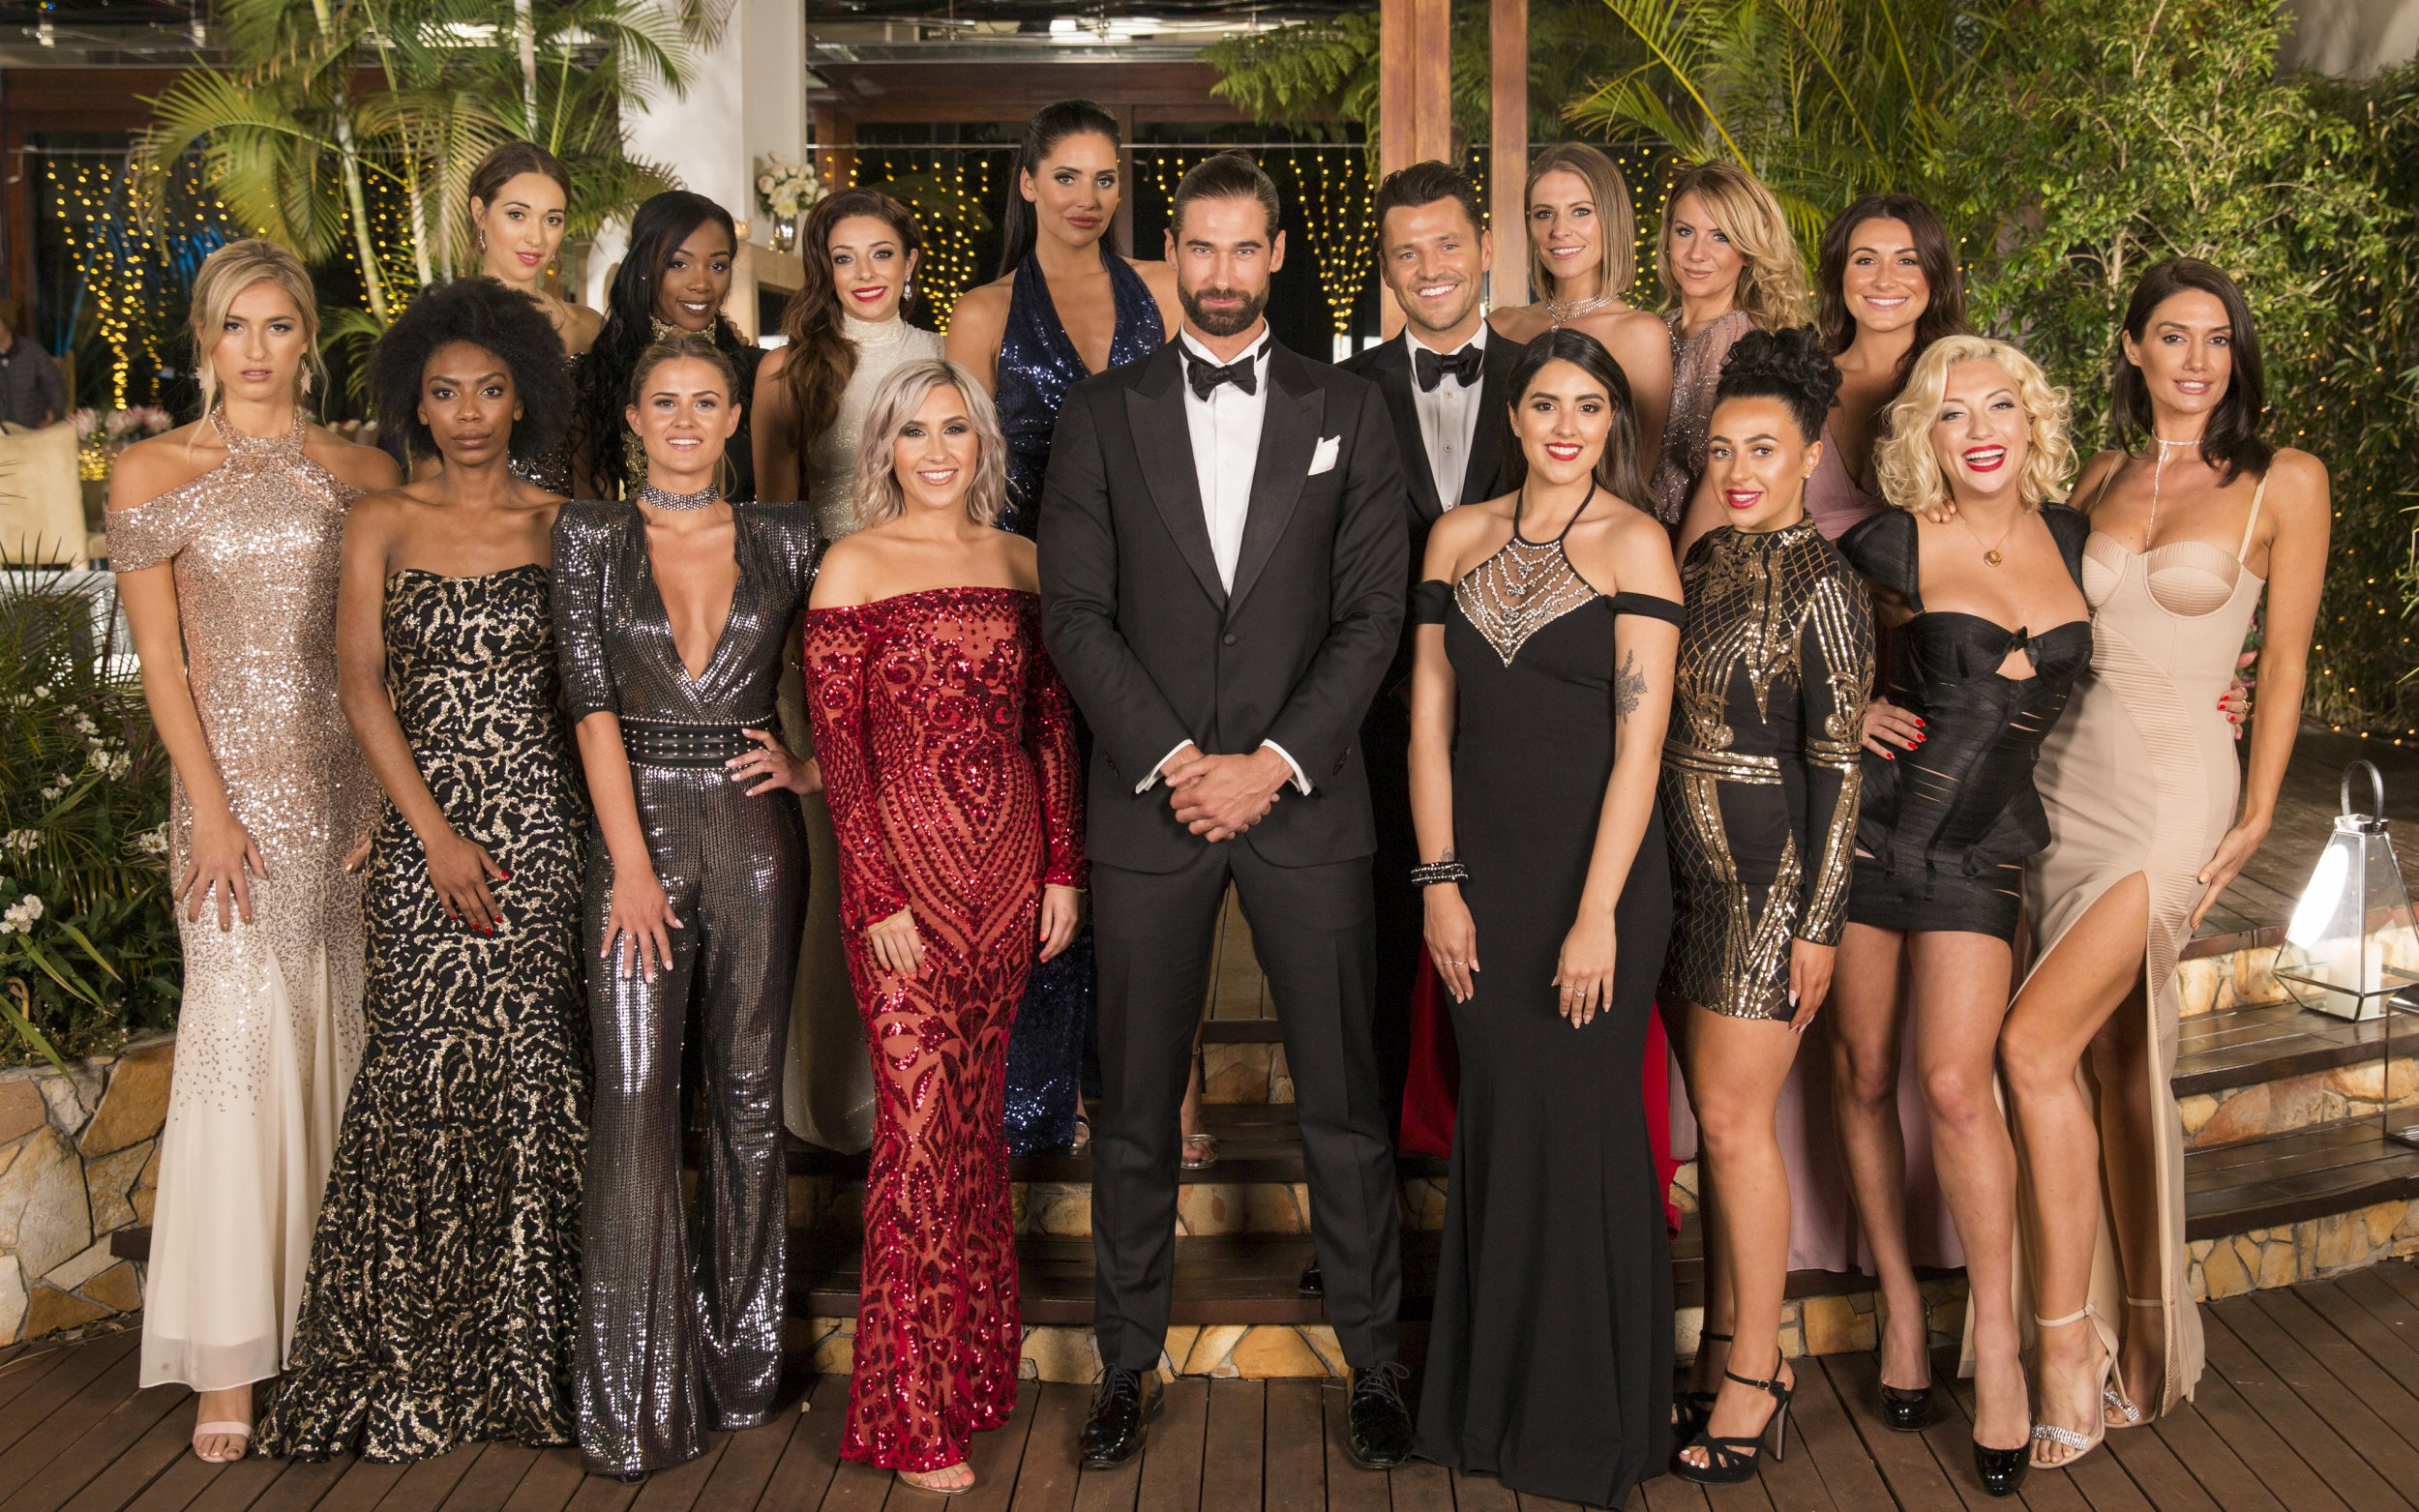 What does the winner of The Bachelor actually get?